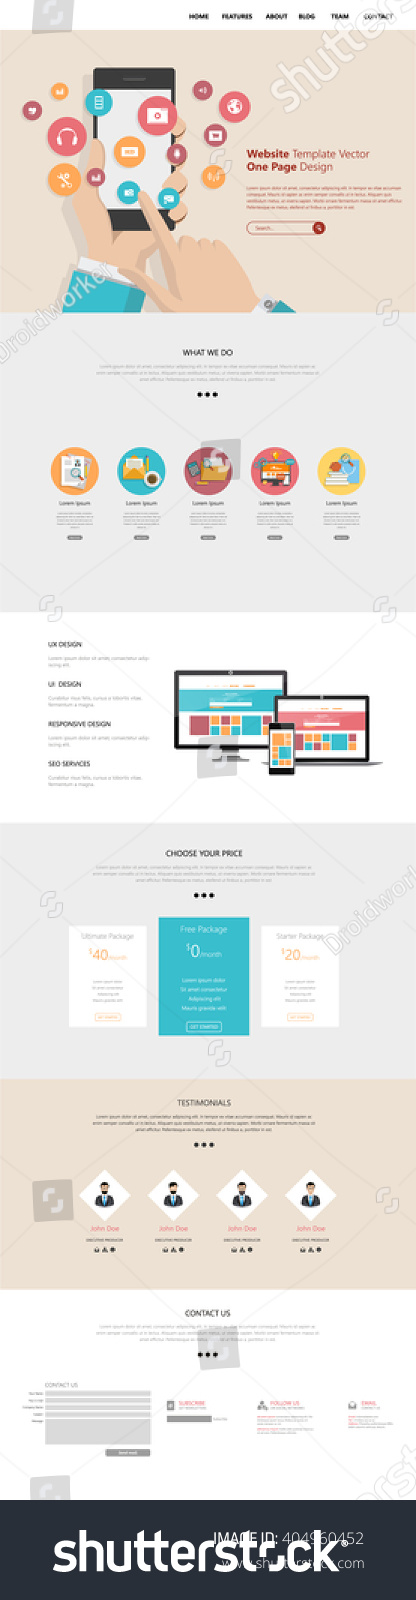 One Page Website Template Vector Eps10 Modern Web Design With Flat